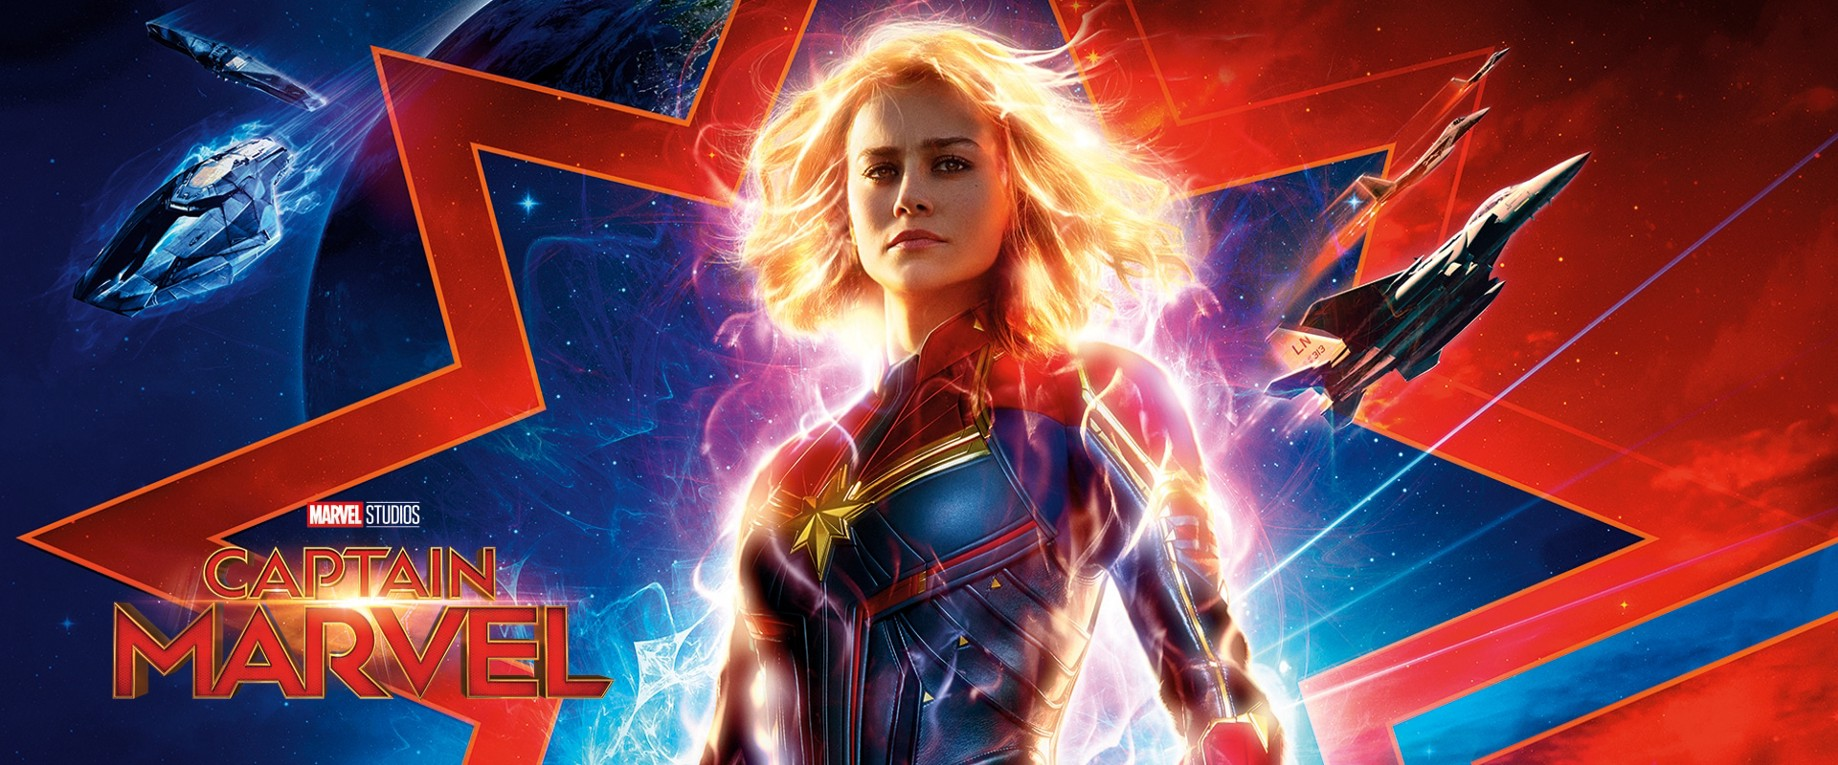 Captain Marvel Might Be The Worst Superhero